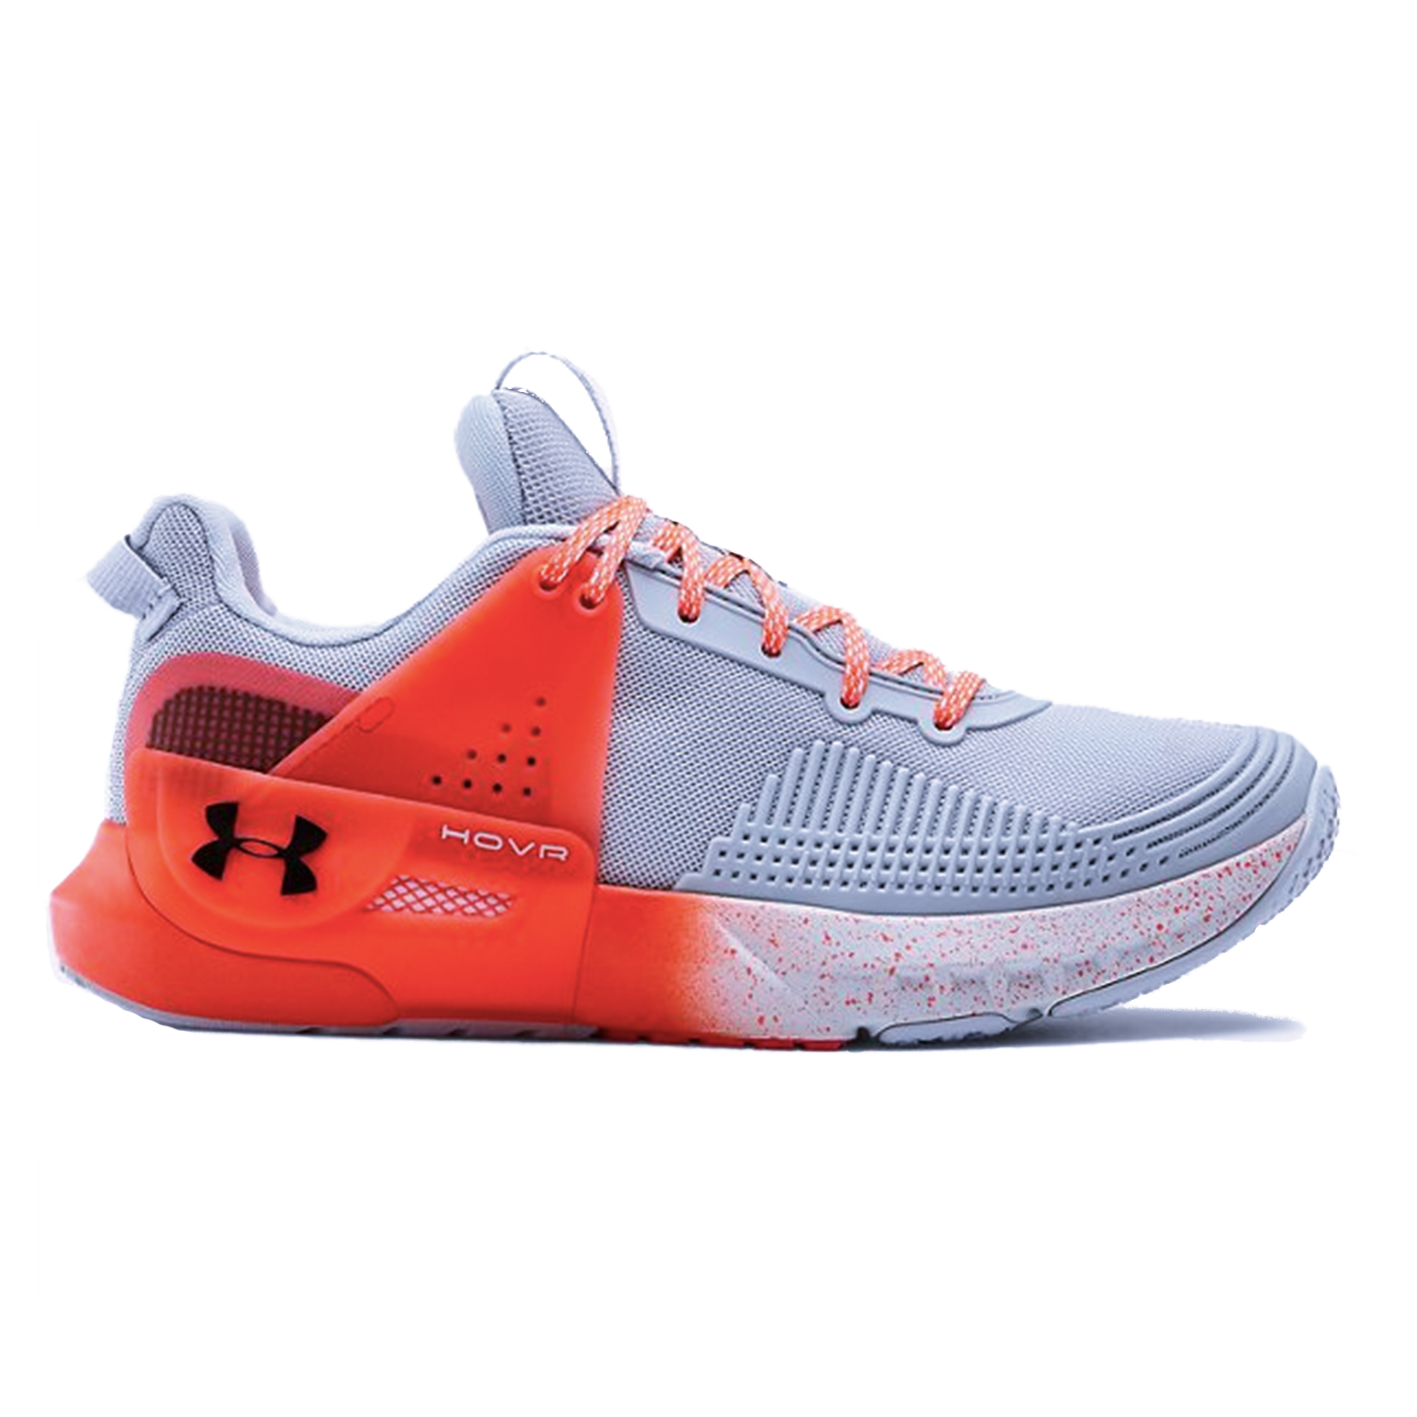 9 Weightlifting Shoes for Women